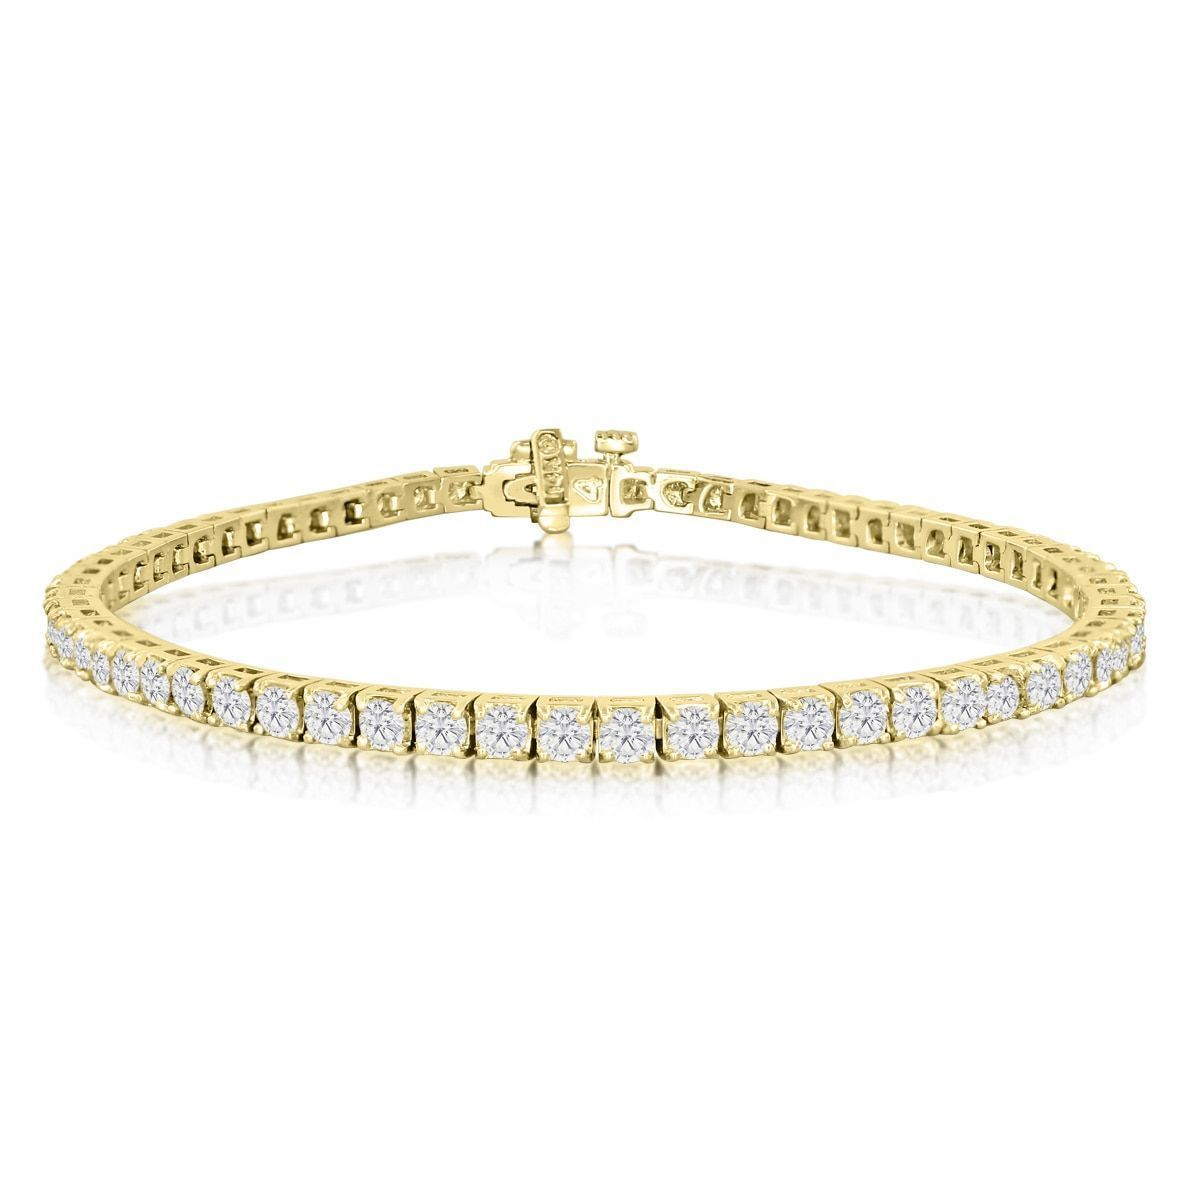 K yellow gold carat diamond tennis bracelet jk ii inch